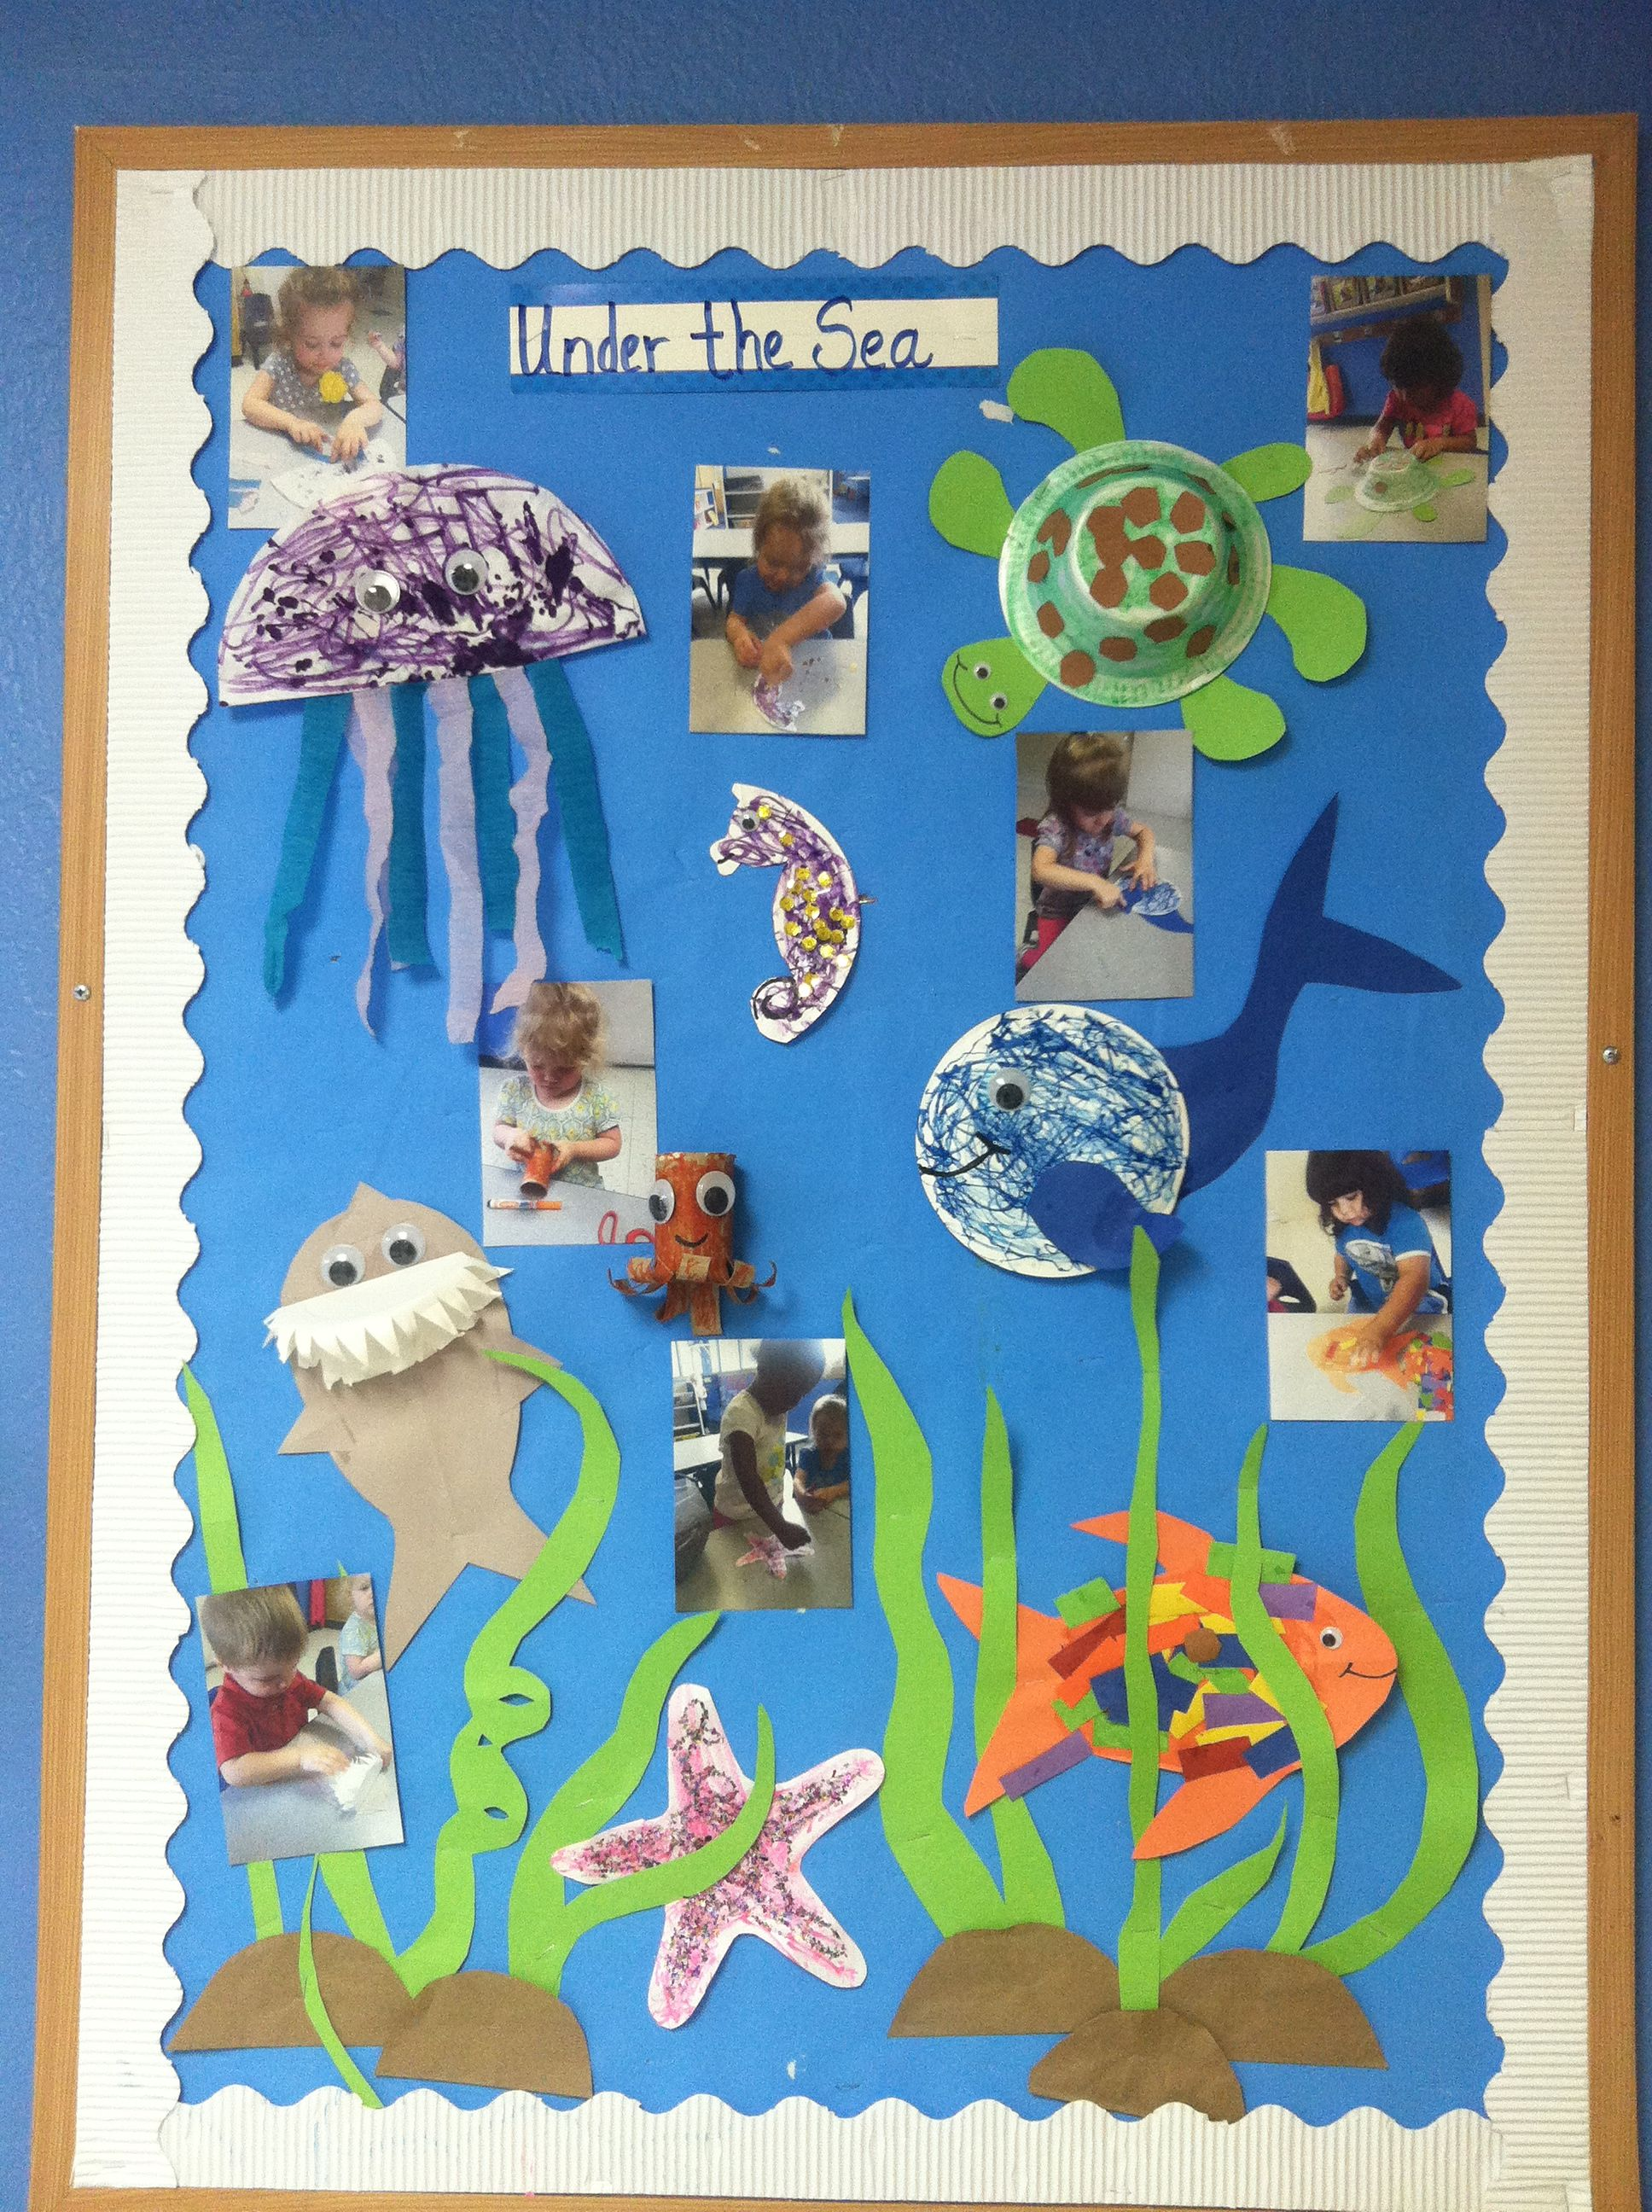 Under the sea animal crafts | sunny project | Pinterest | Sea animal ...